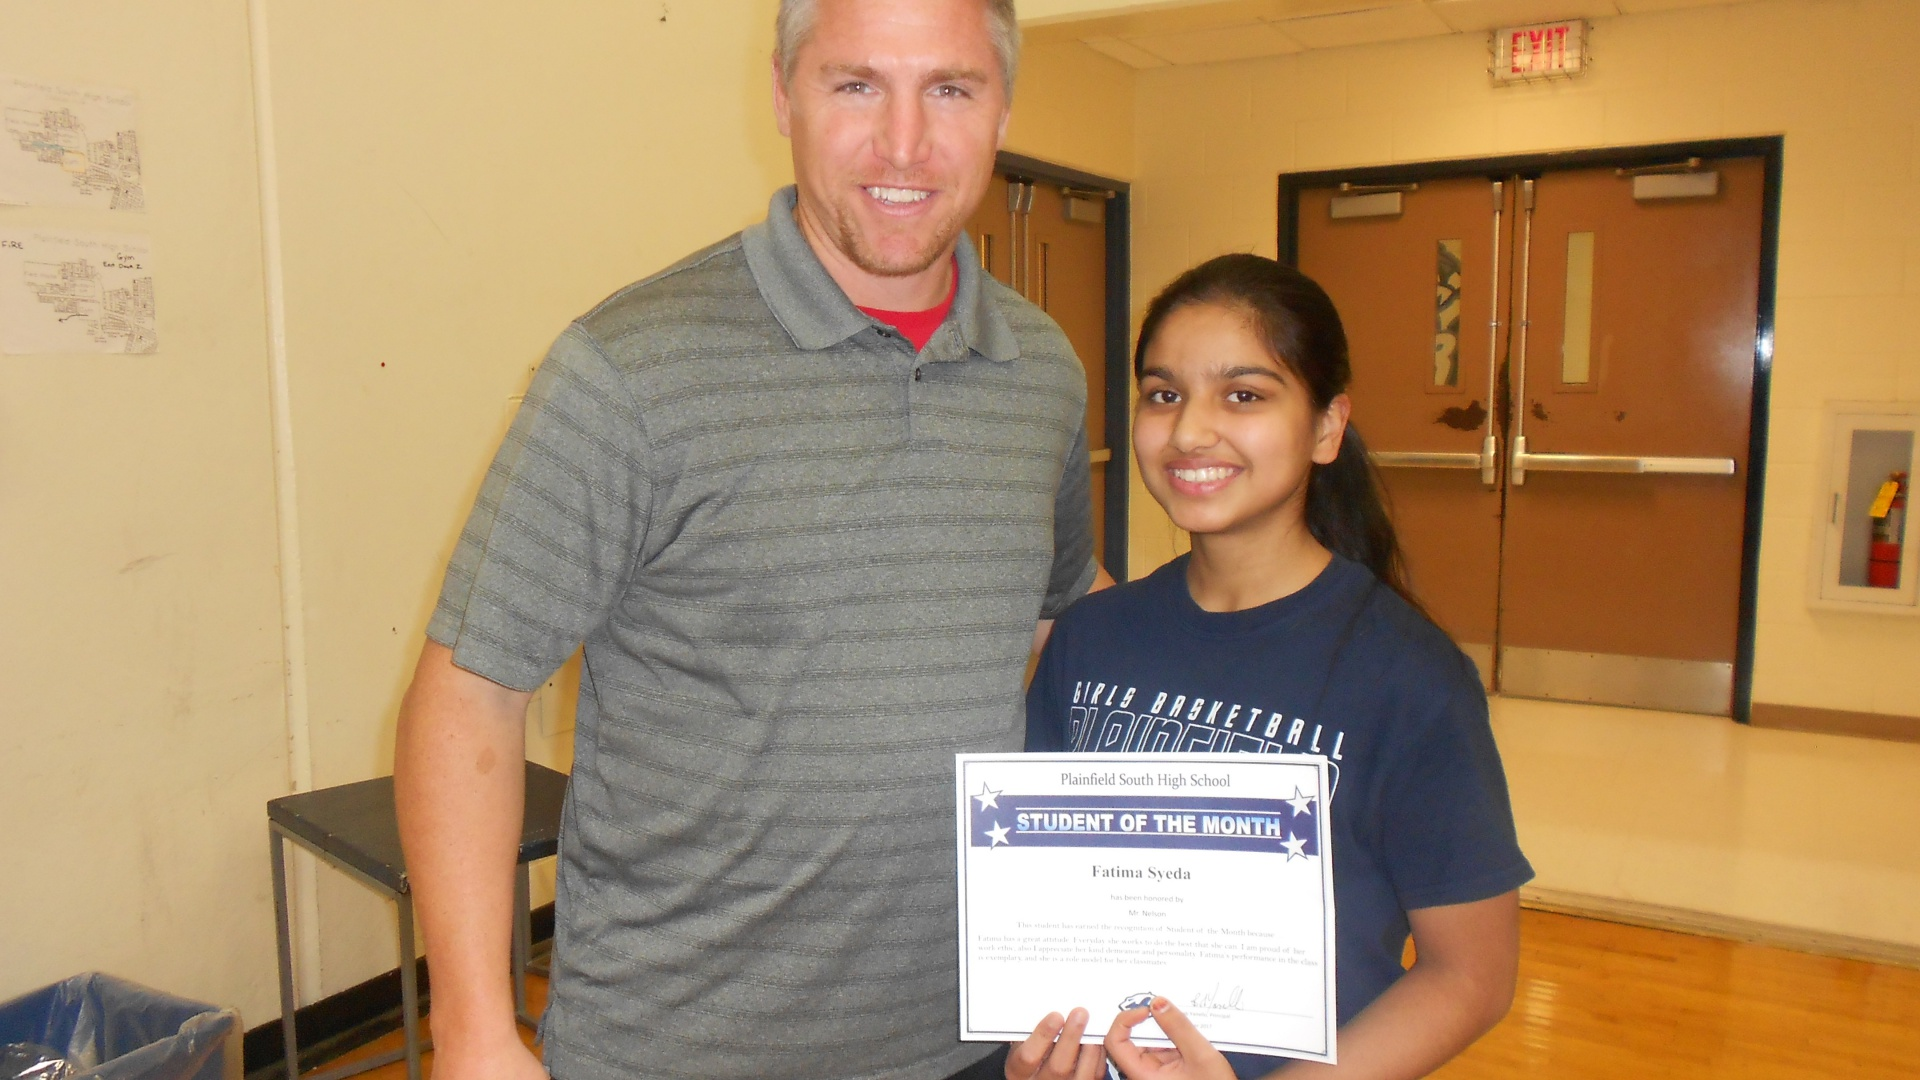 Student of the Month Fatima Syeda